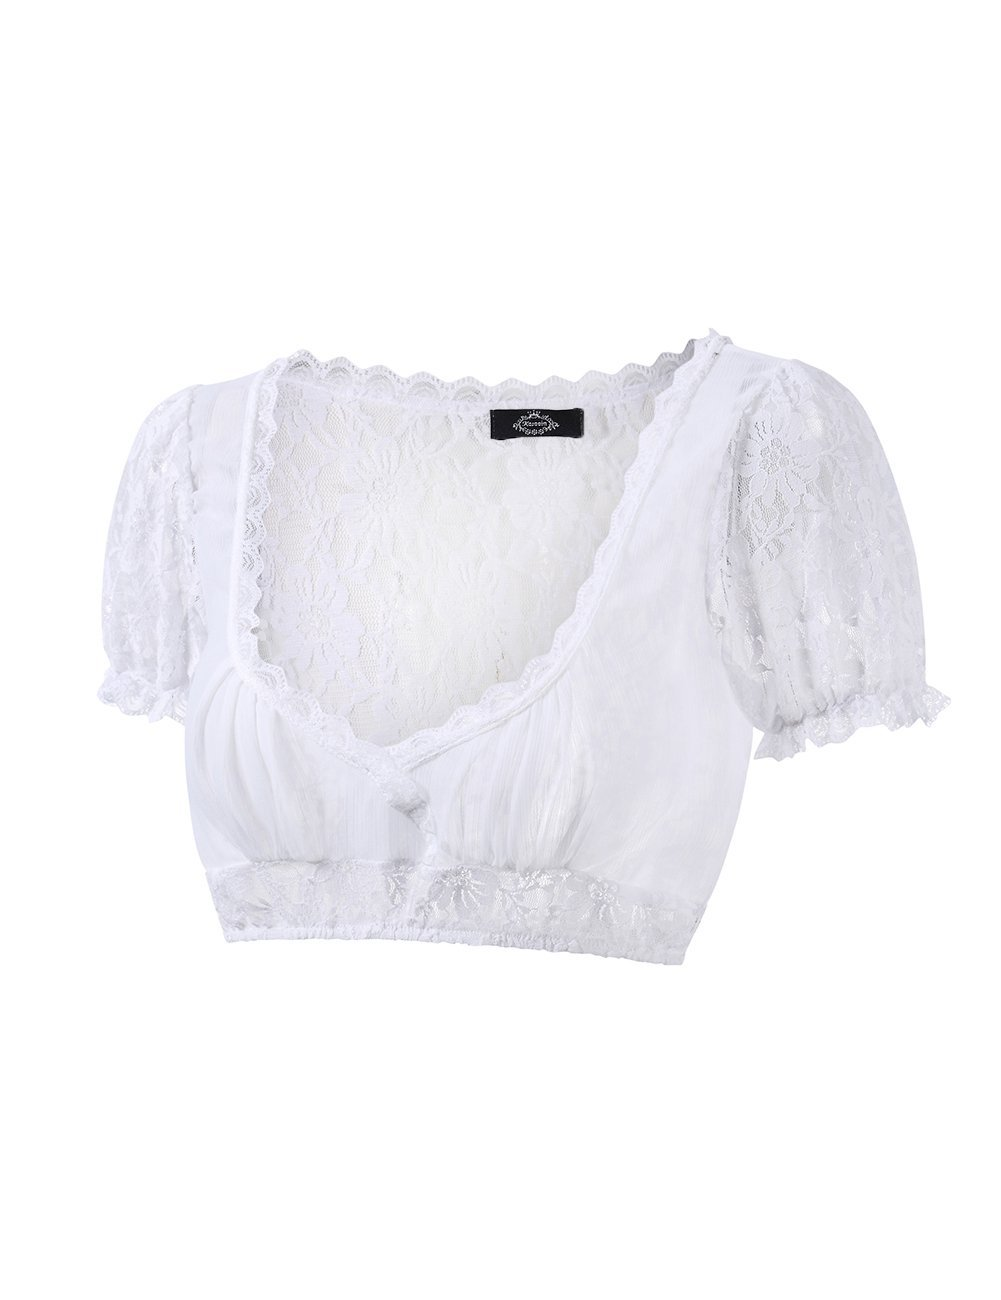 Leoie Women's Beer Festival Sexy See-Through Dirndl Solid Lace Chiffon Splicing Stylish Dirndl Top by Leoie (Image #3)